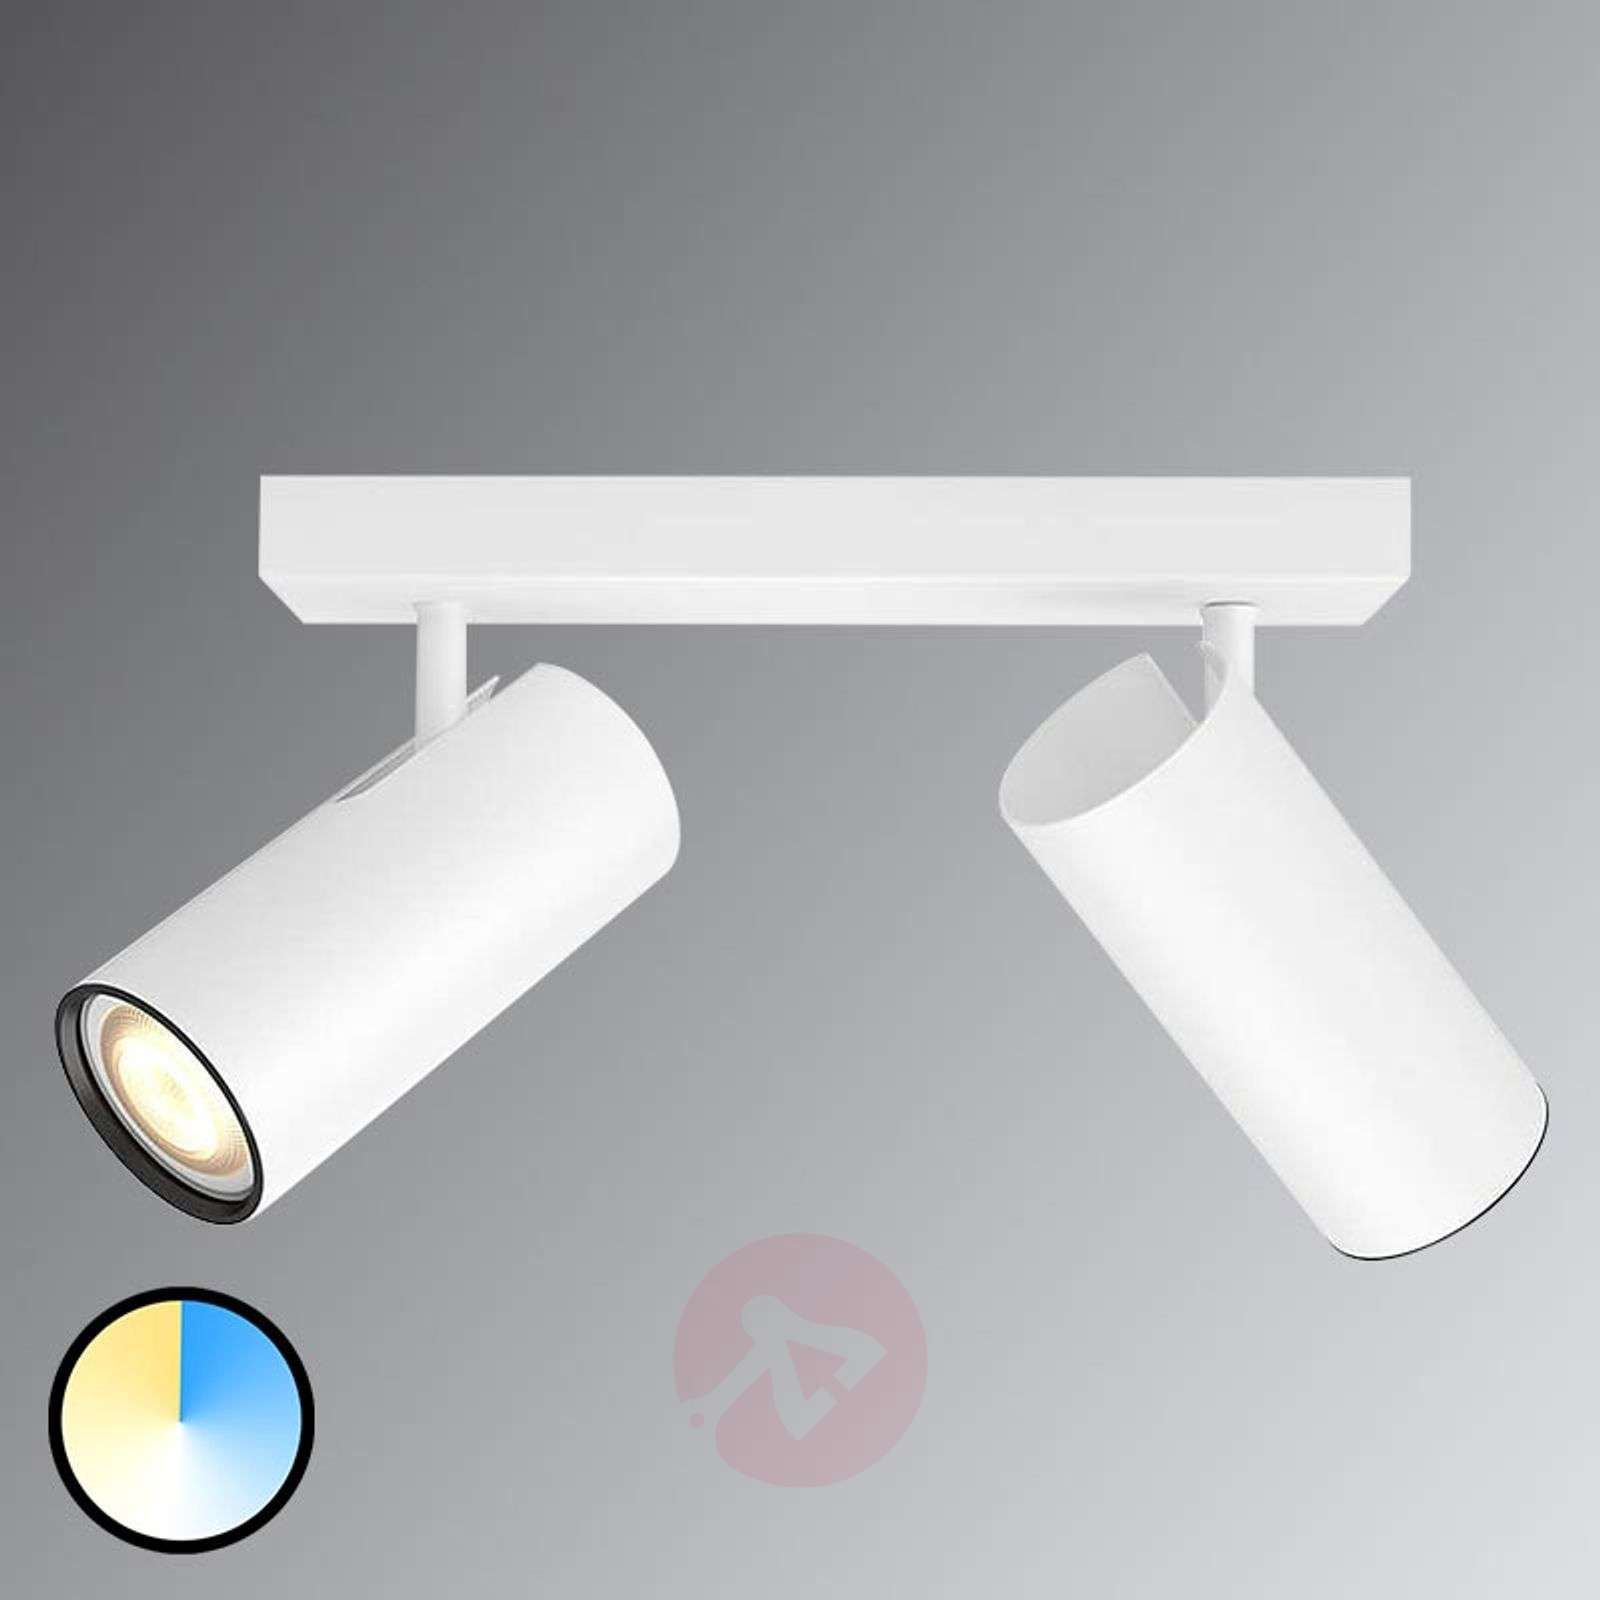 Spot LED Philips Hue Buratto White Ambiance-7532042-01